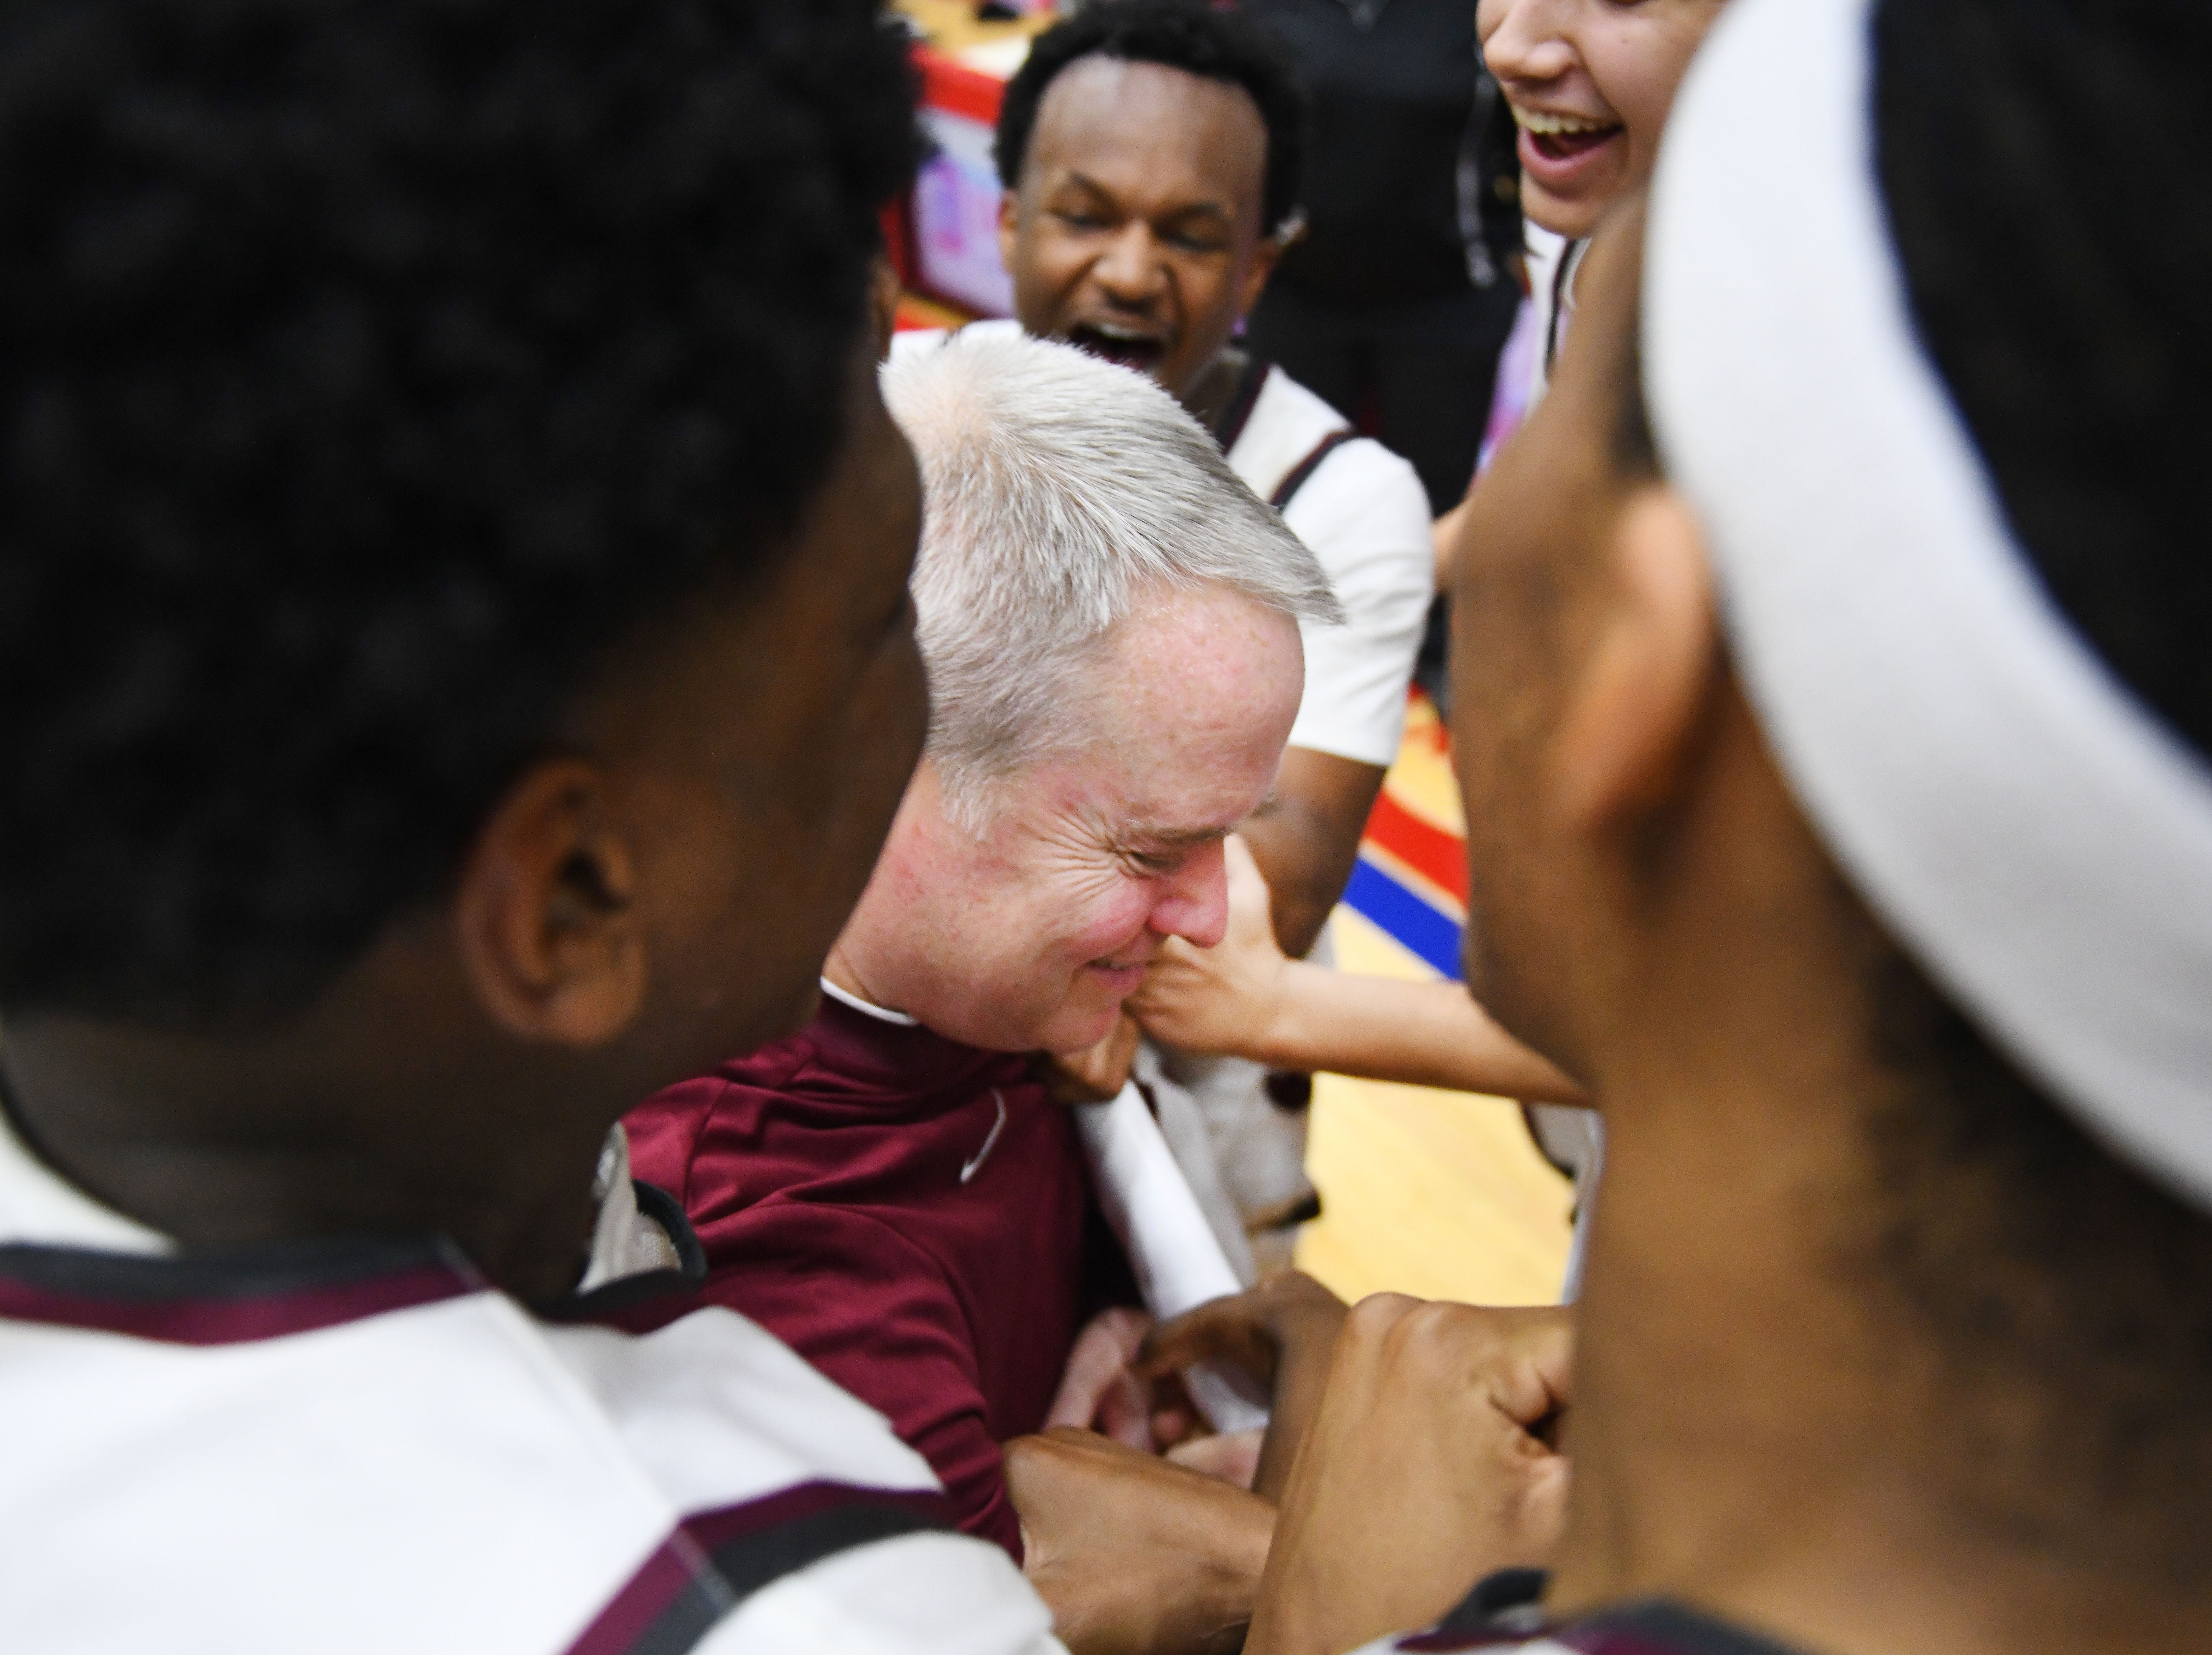 U of D Jesuit coach Pat Donnelly is mobbed by his players after the victory which was Donnellly's 200th win.